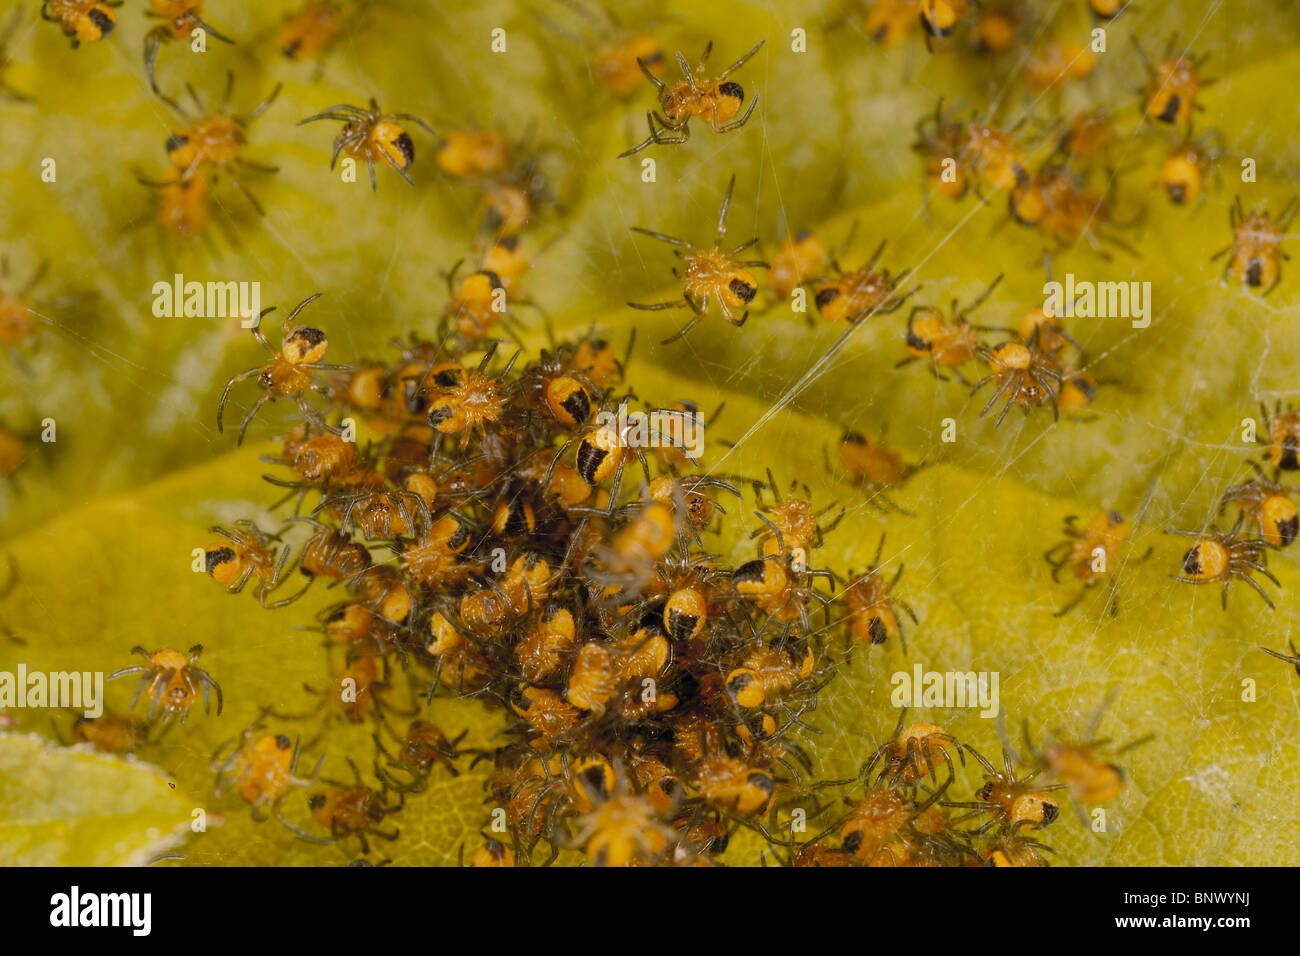 Young spiderlings of common garden spider, Araneus diadematus group together and spread out when threatened or disturbed. - Stock Image